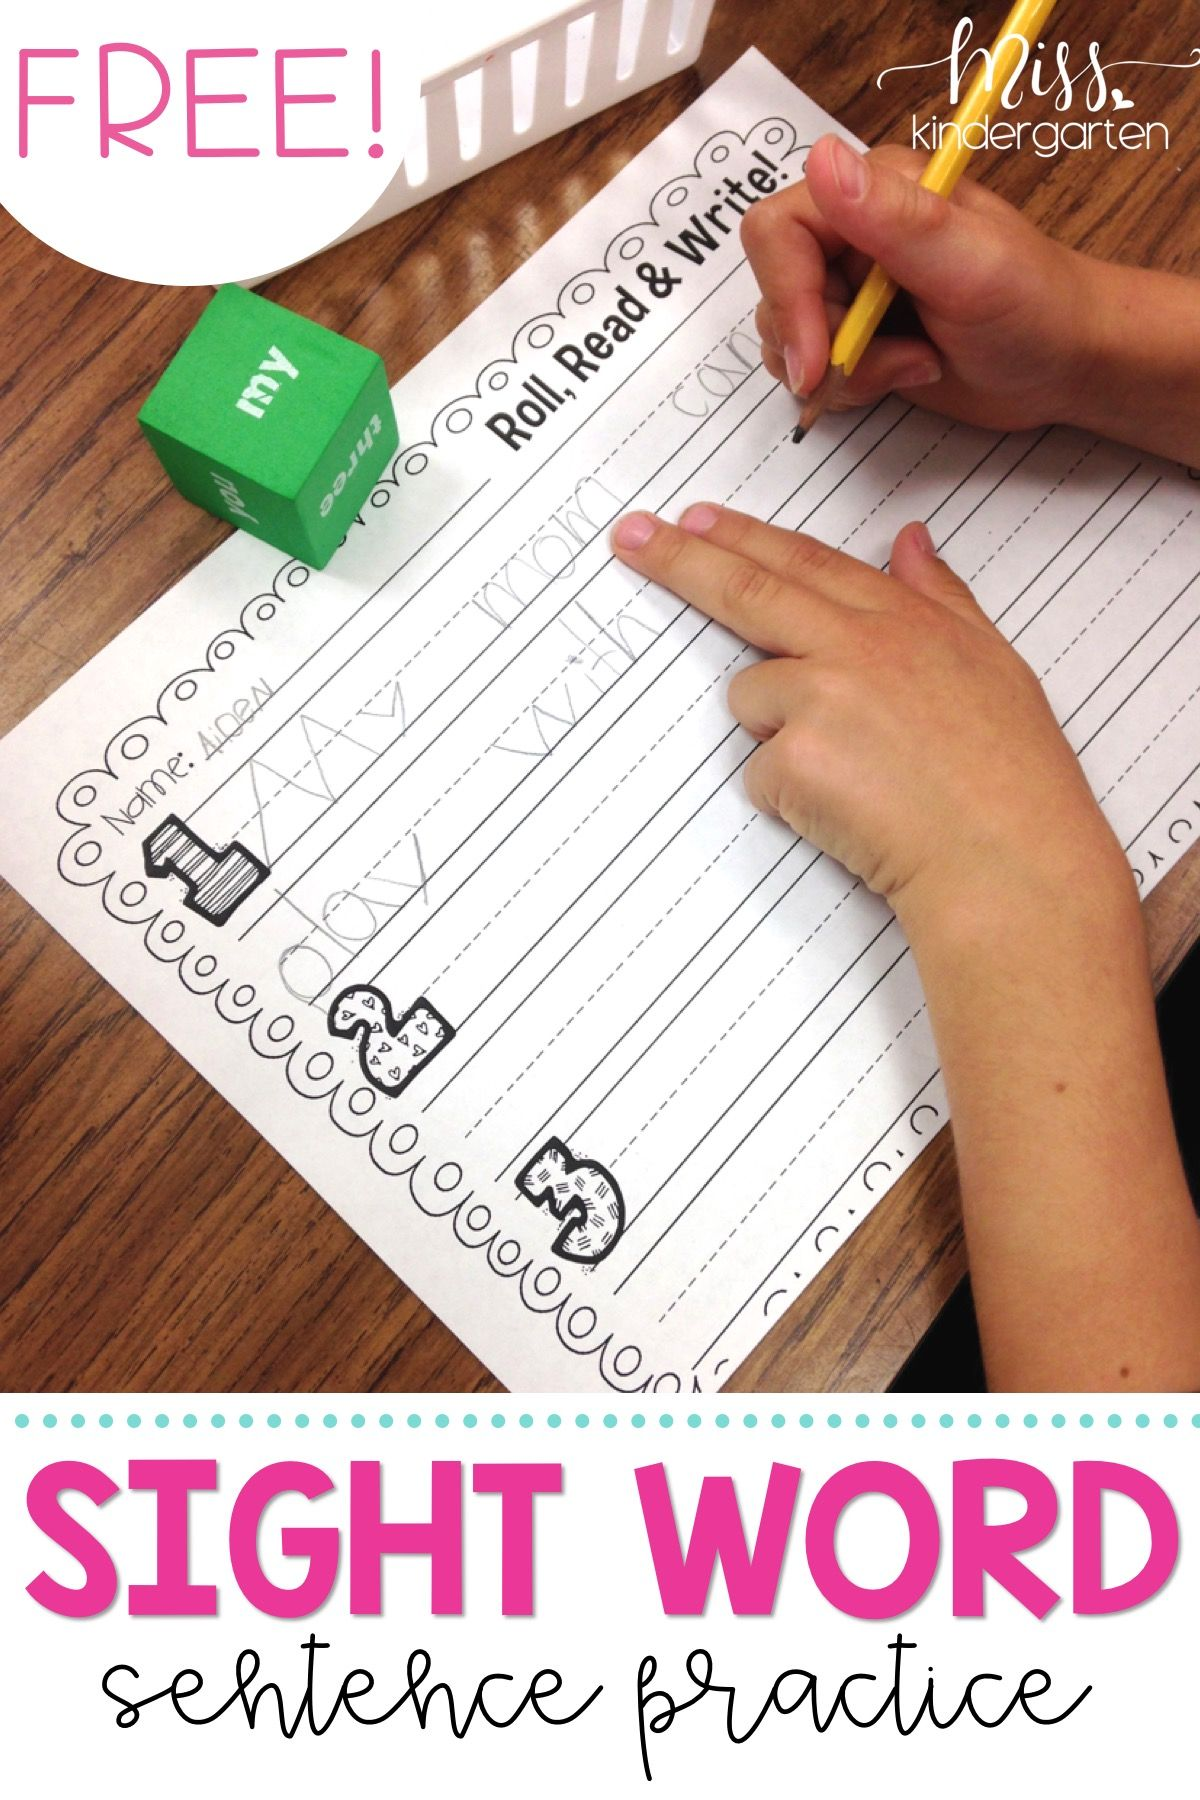 Use These Free Printable Worksheets At Home And In Centers